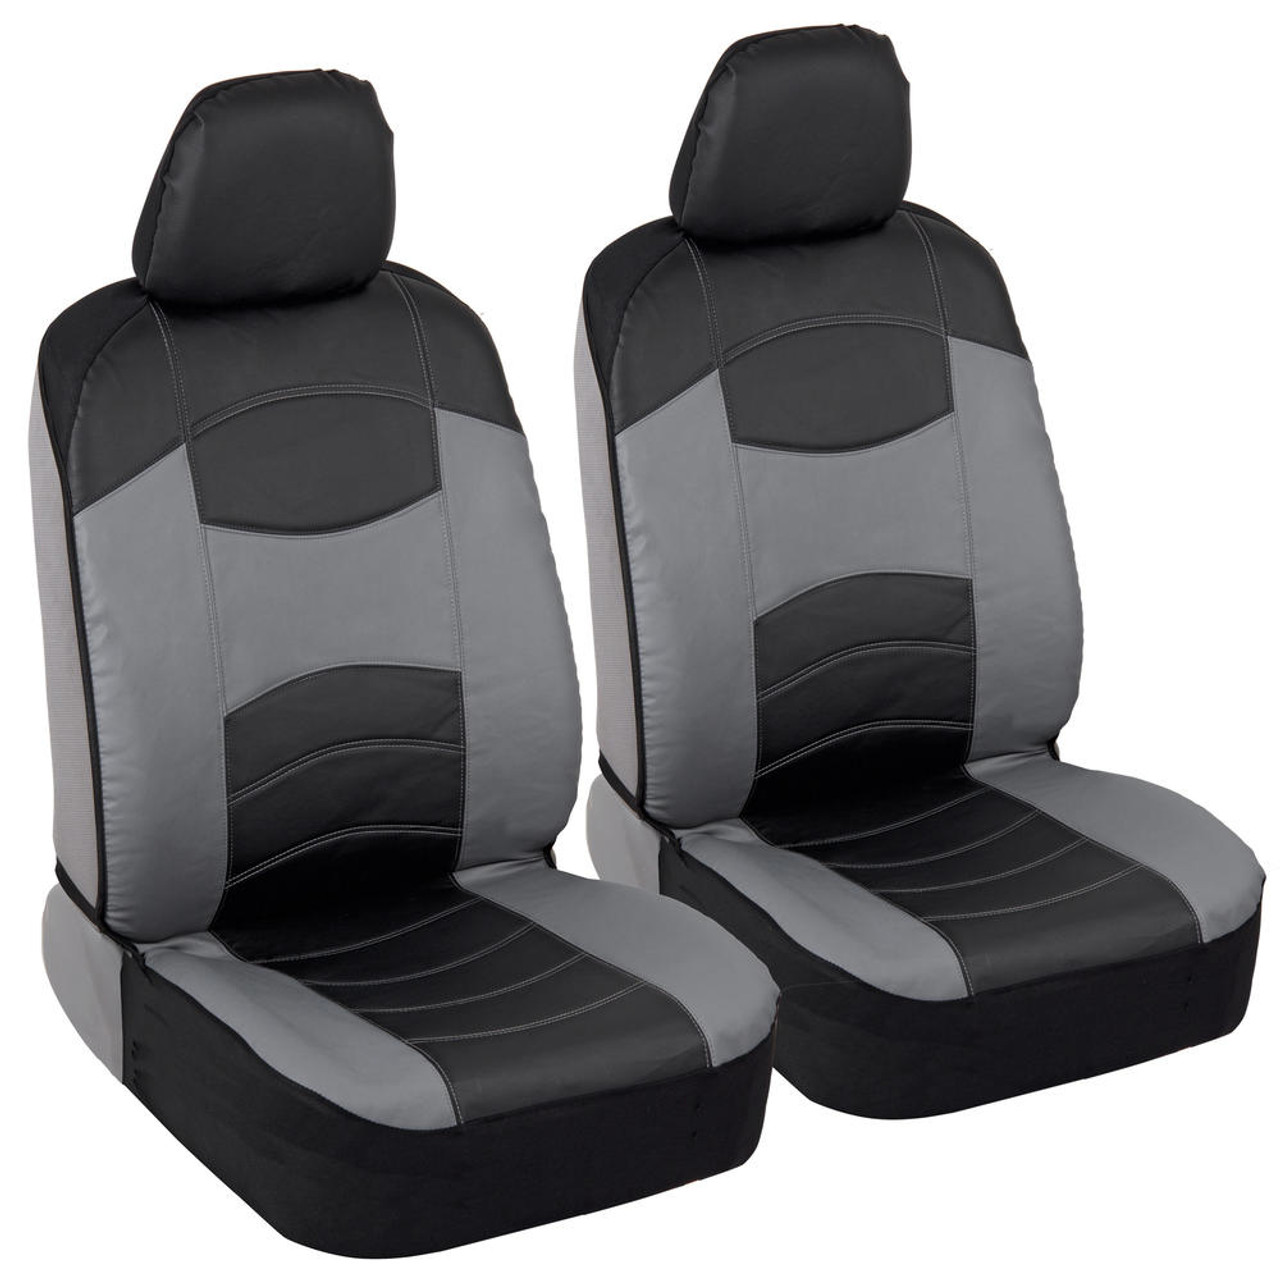 VAN SEAT COVERS BLACK HEAVY DUTY WATERPROOF SINGLE /& DOUBLE 06 ON